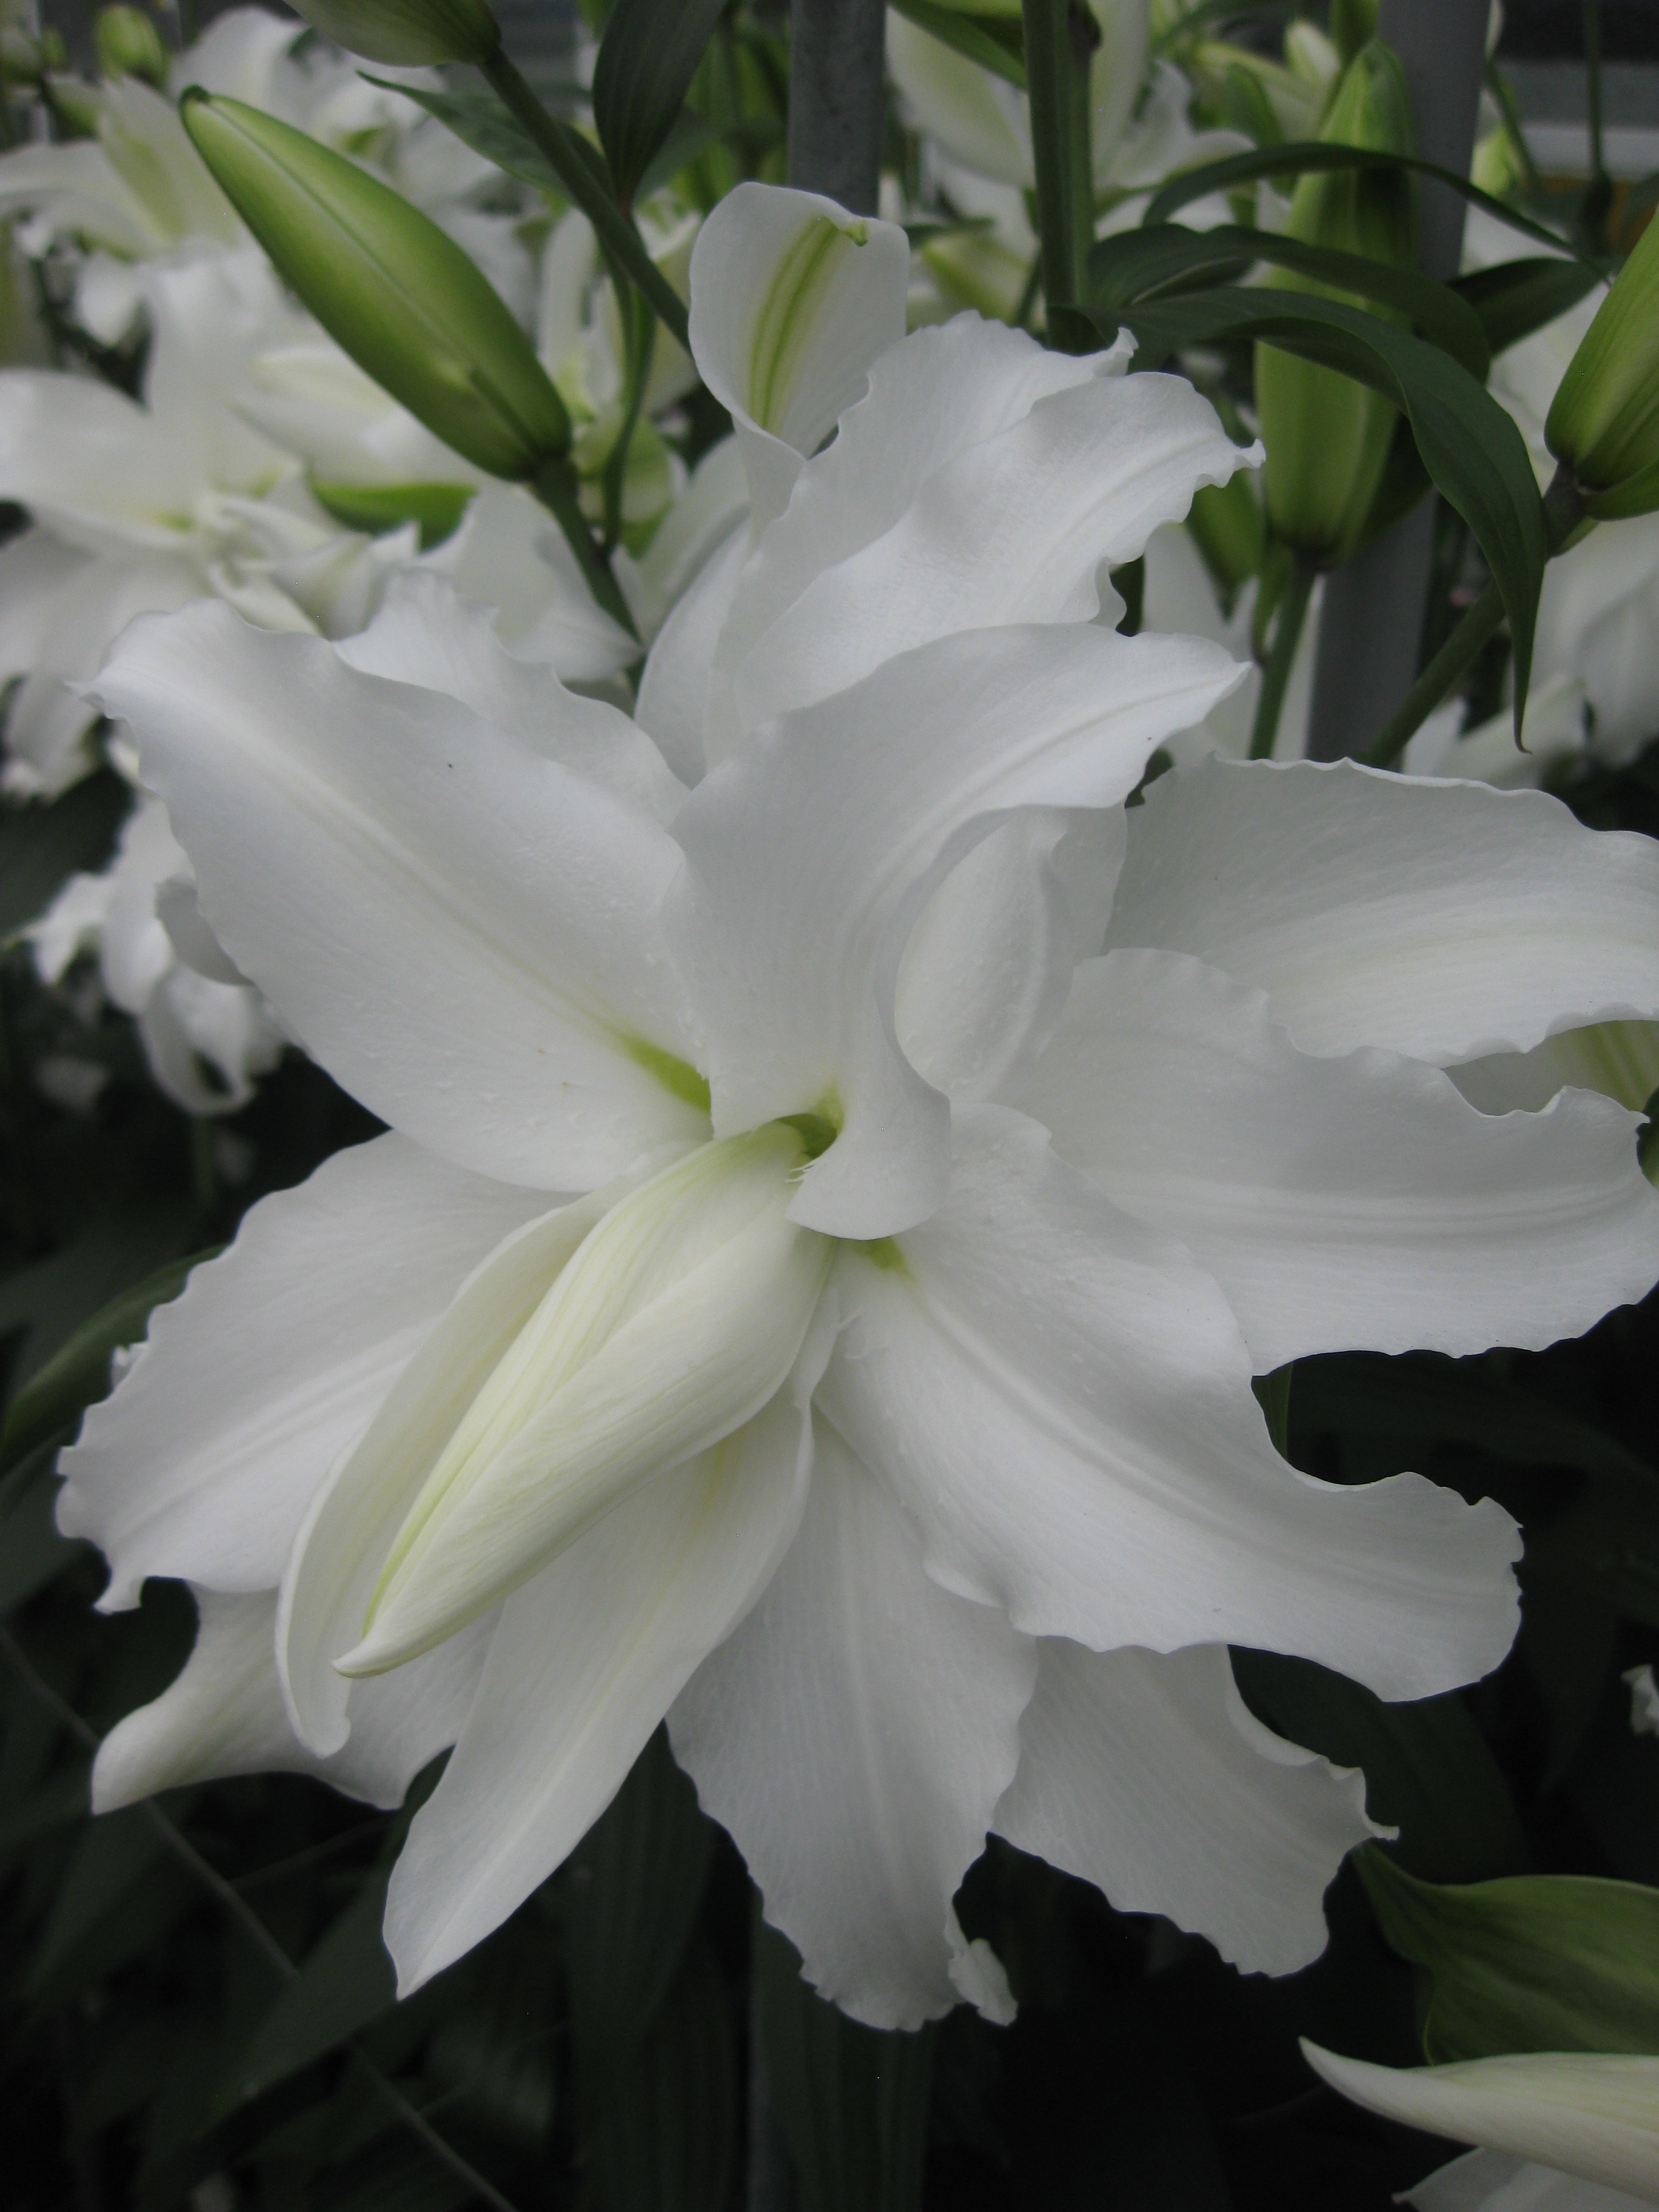 My wedding double oriental lily from the gold medal winning harts my wedding my wedding lily dhlflorist Choice Image